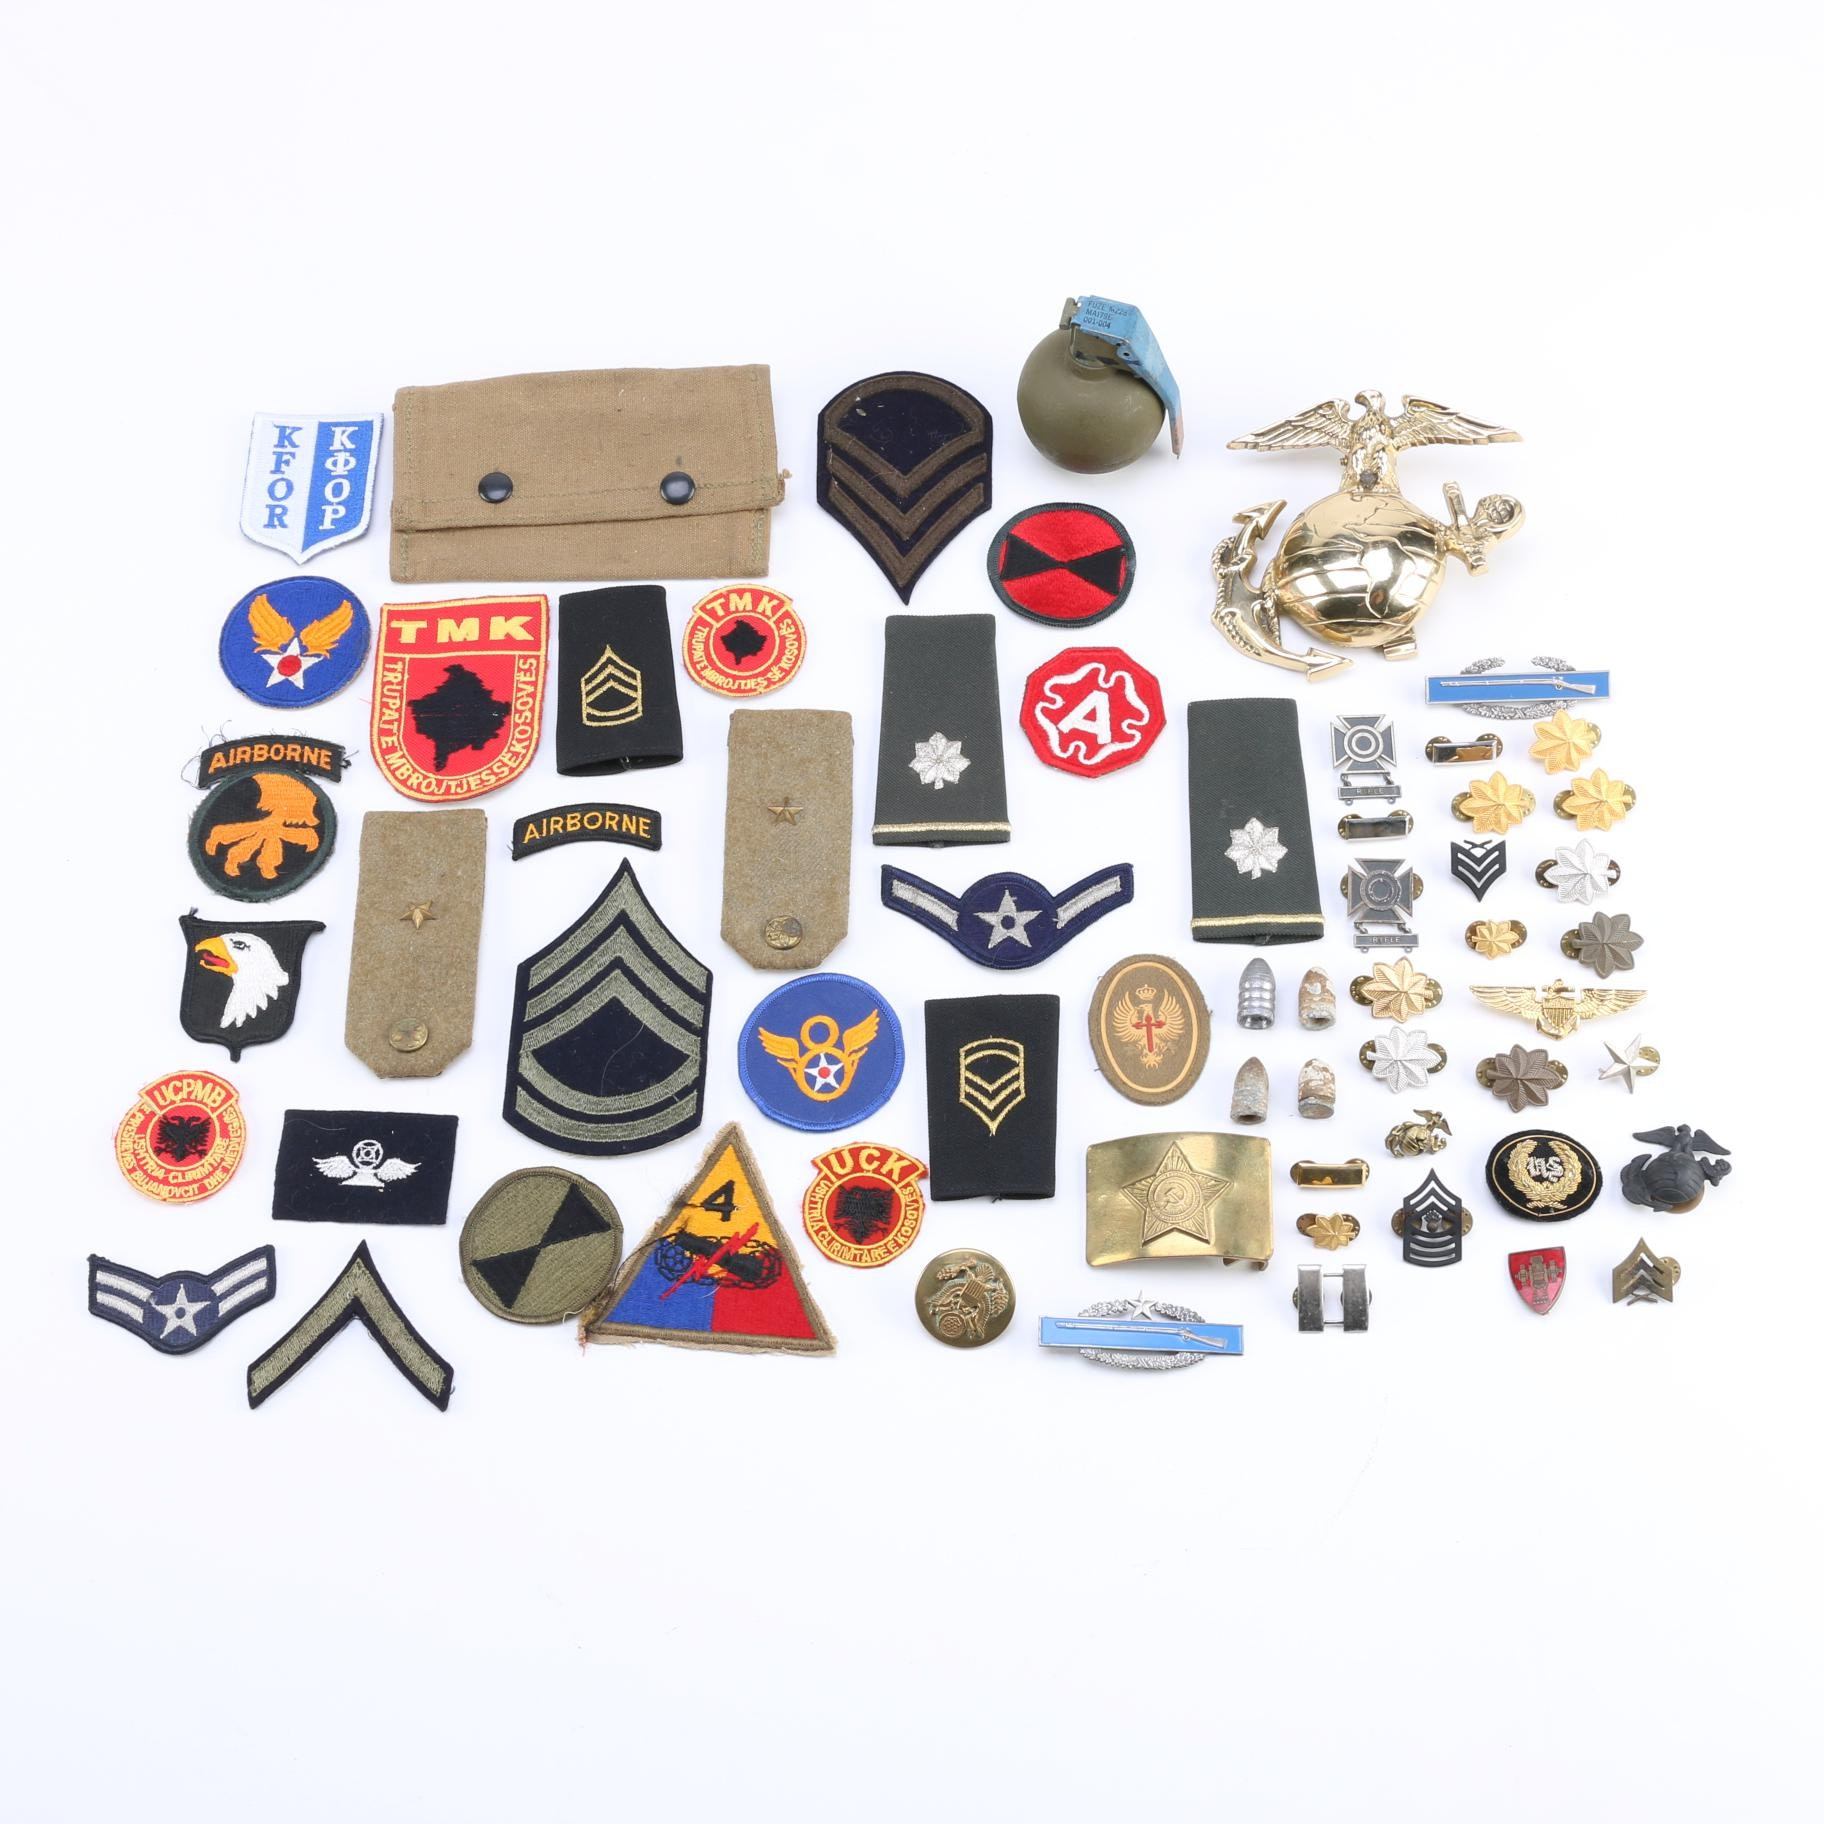 Military Patches, Pins, and Memorabilia